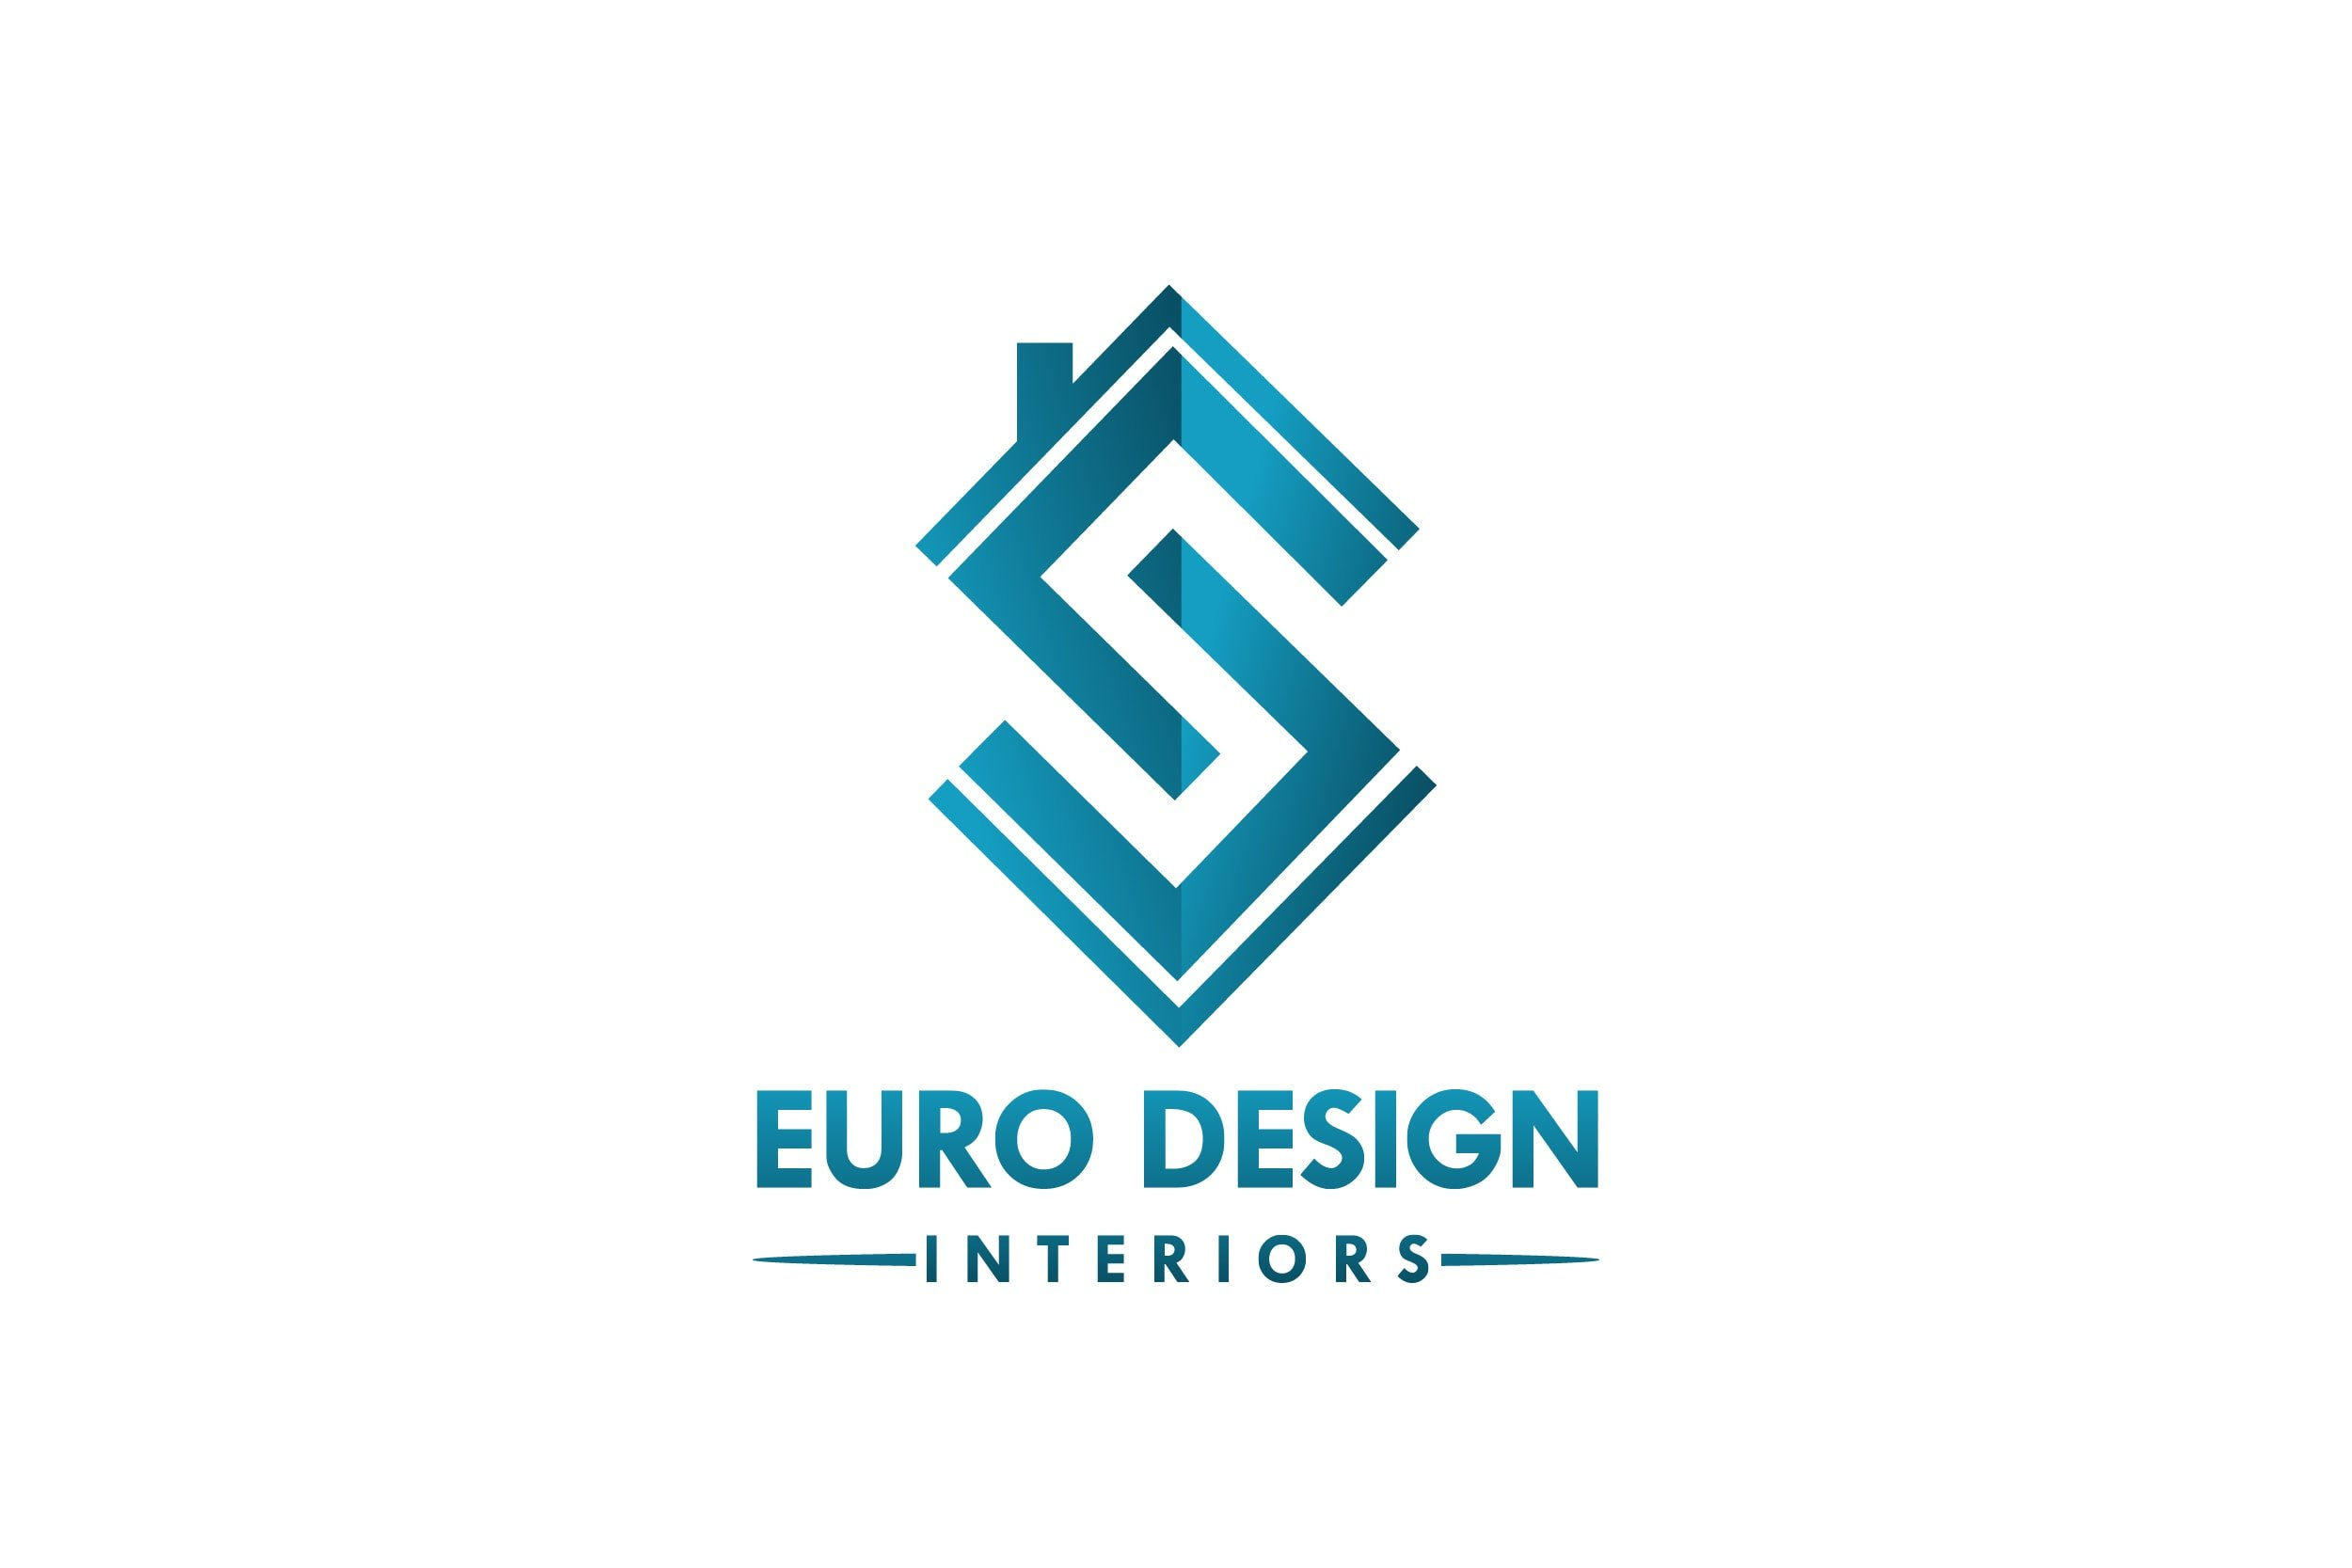 Euro Design Interiors LTD